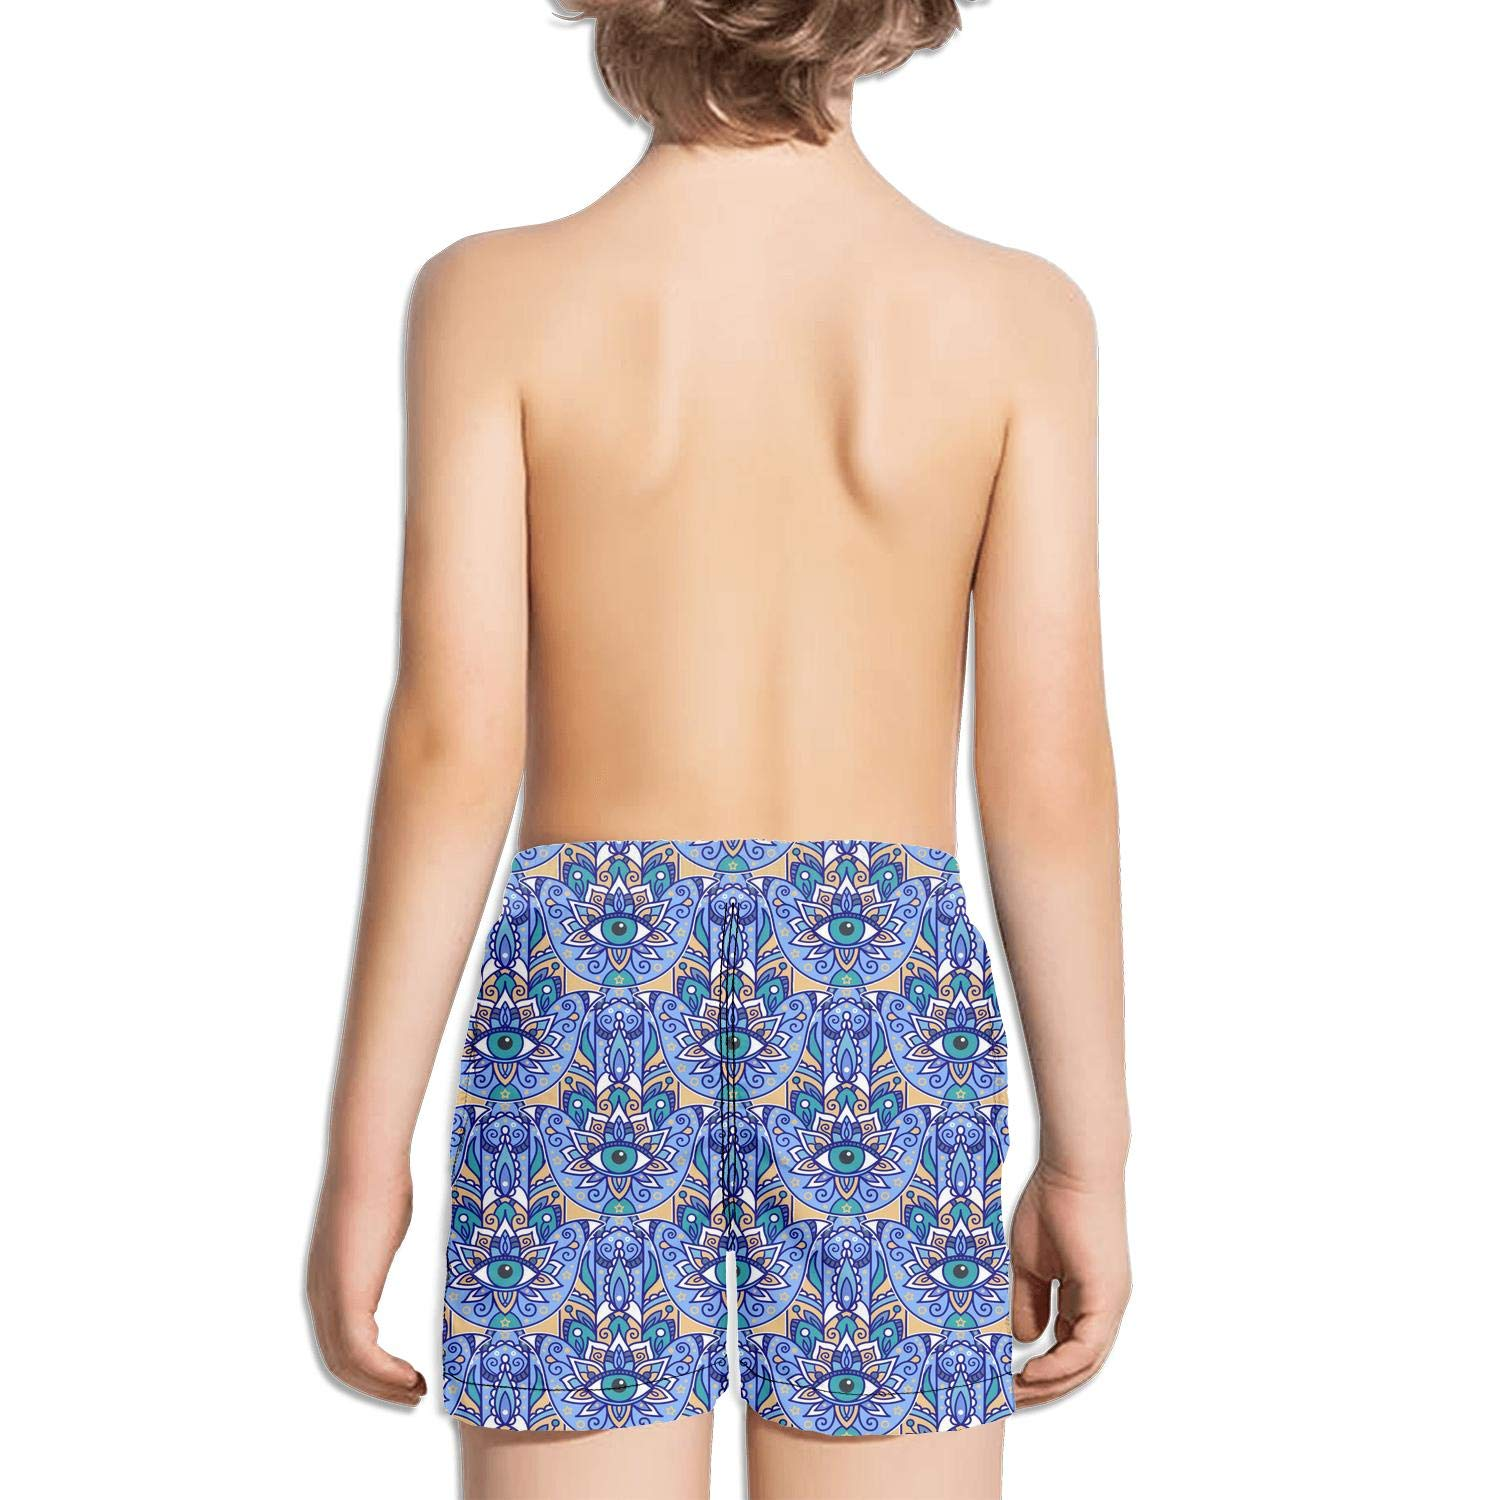 jhnkmmnc Oriental Motif Abstract Eye Plant Pattern Blue Running Printed Quick Dry Swimming Trunks Shorts